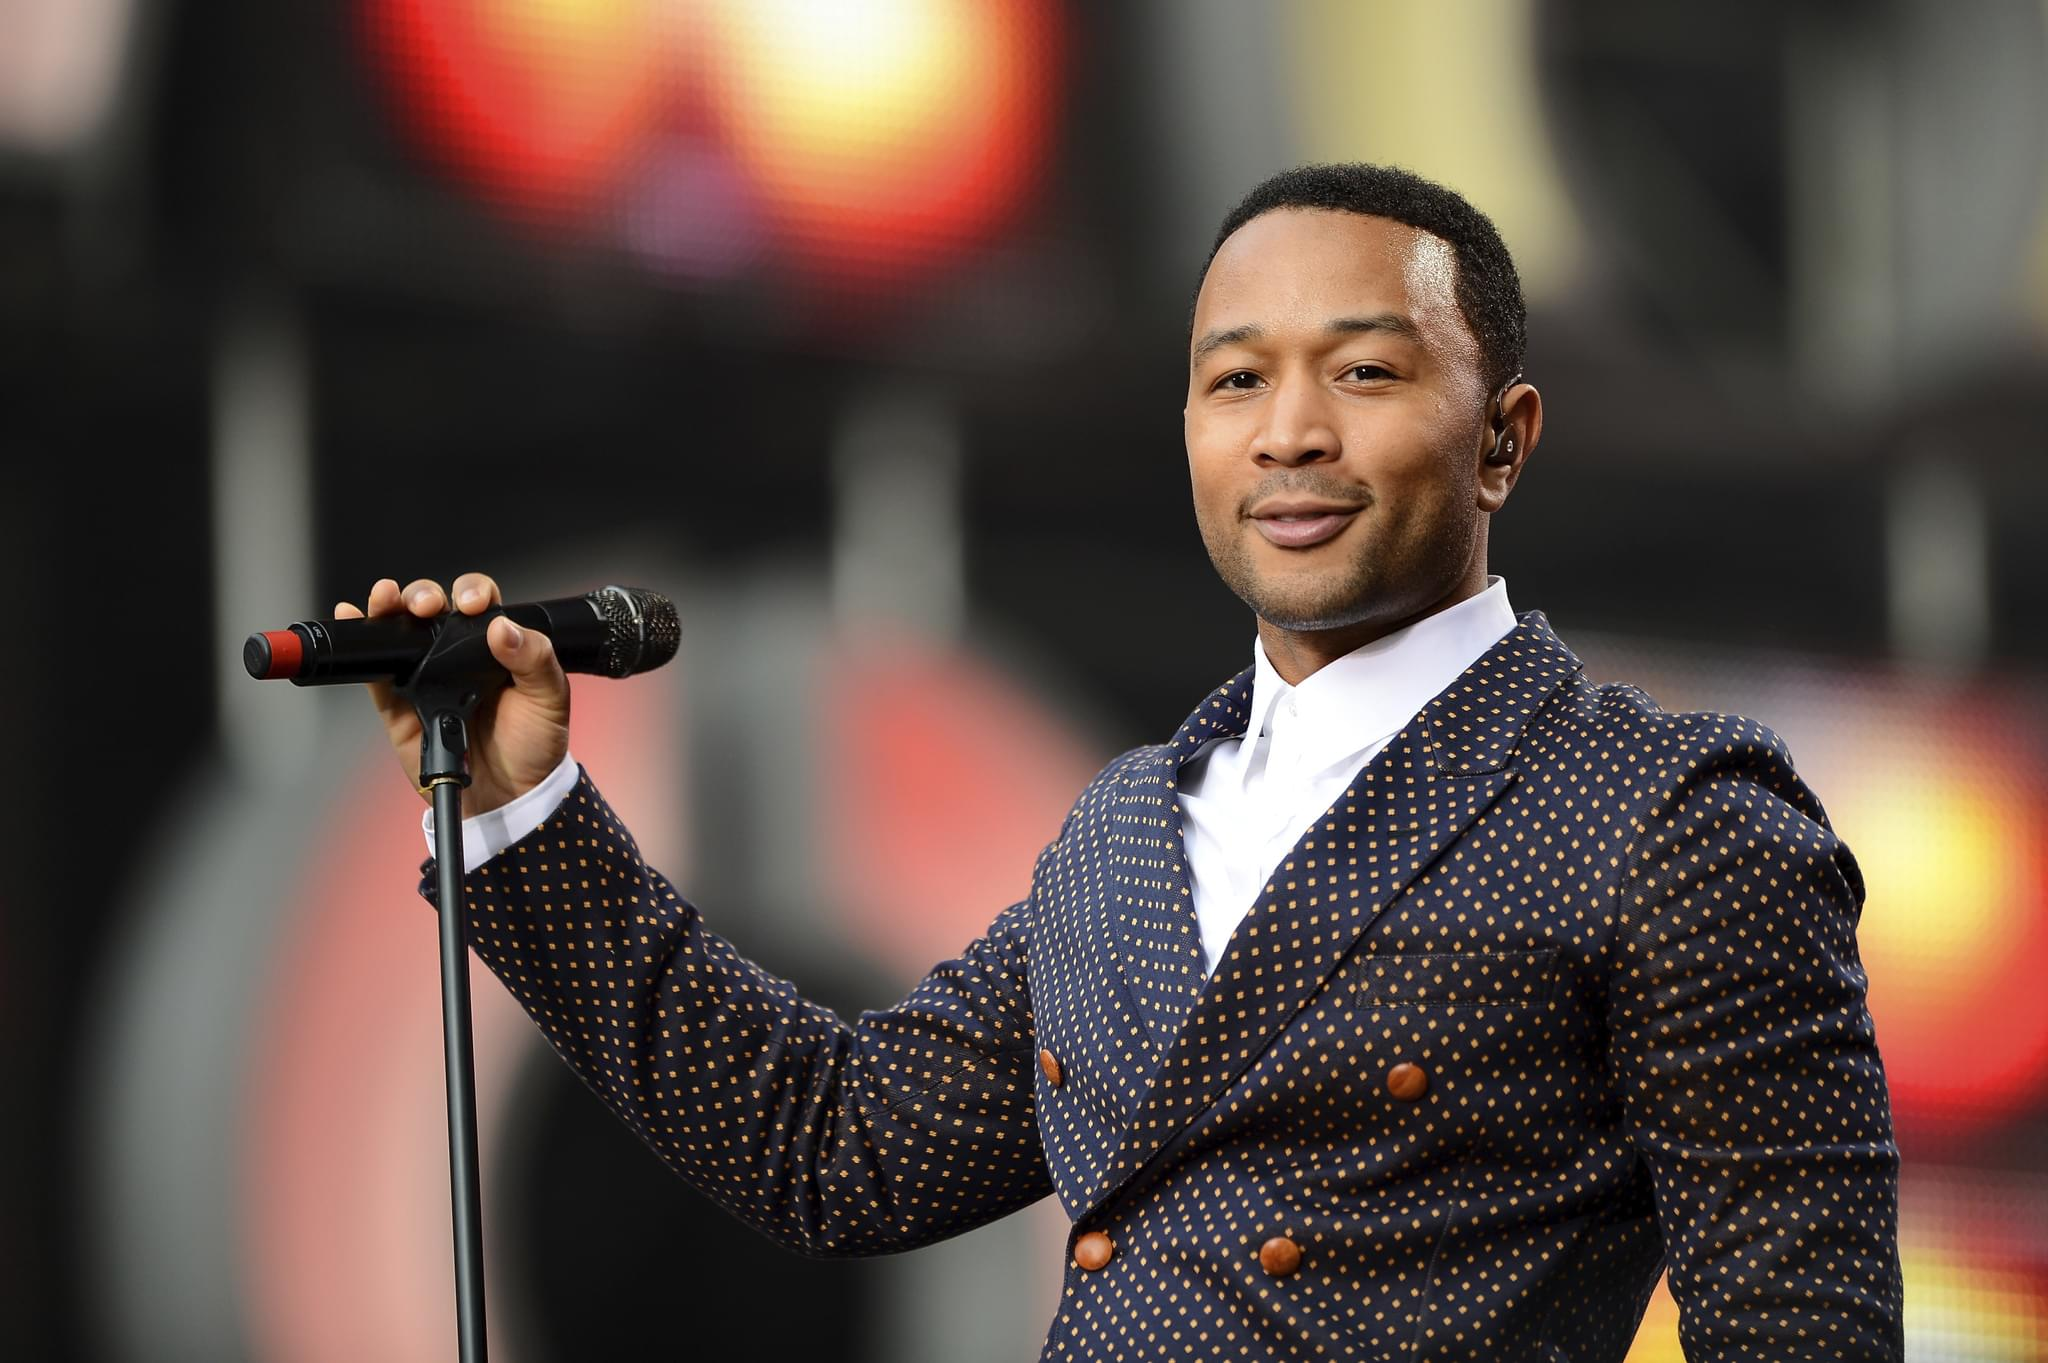 John Legend To Host Father's Day Special on ABC